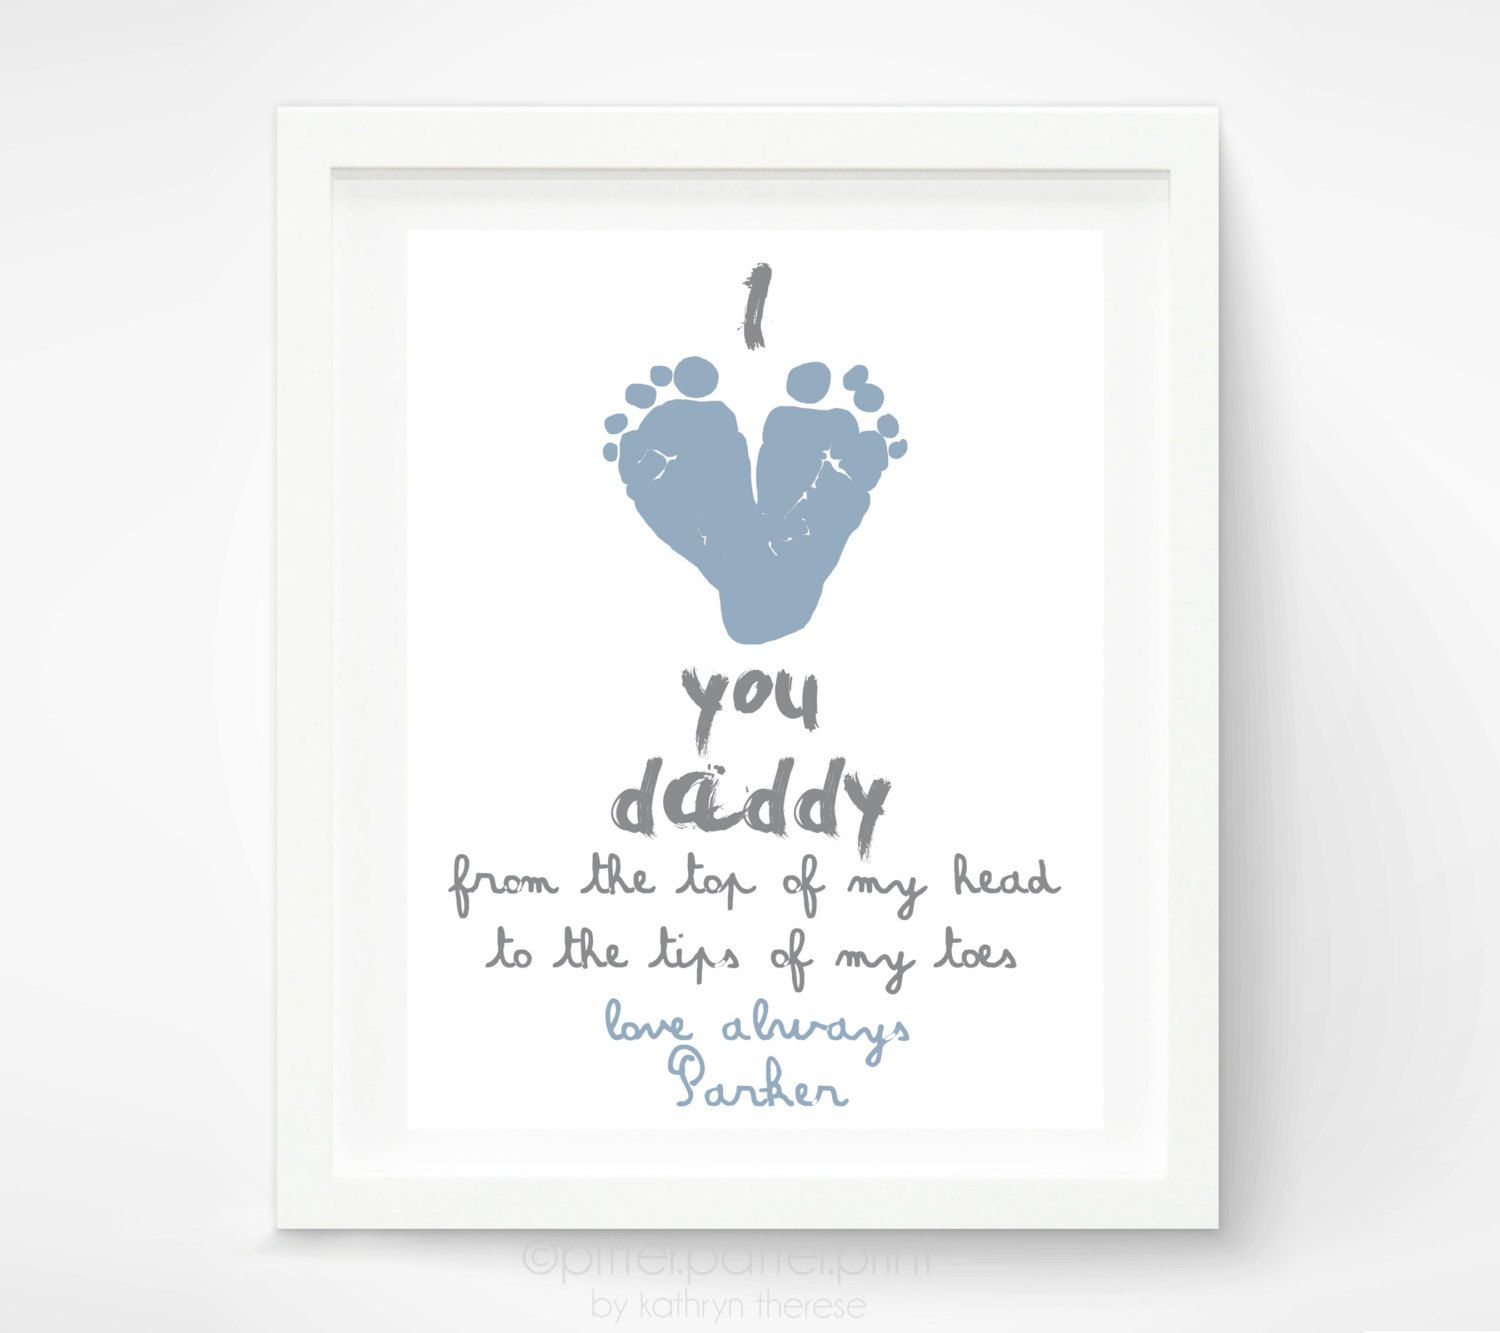 New Baby Gifts For Dad Part - 19: Personalized Fatheru0027s Day Gift For New Dad - I Love You Daddy Baby  Footprint Art Print